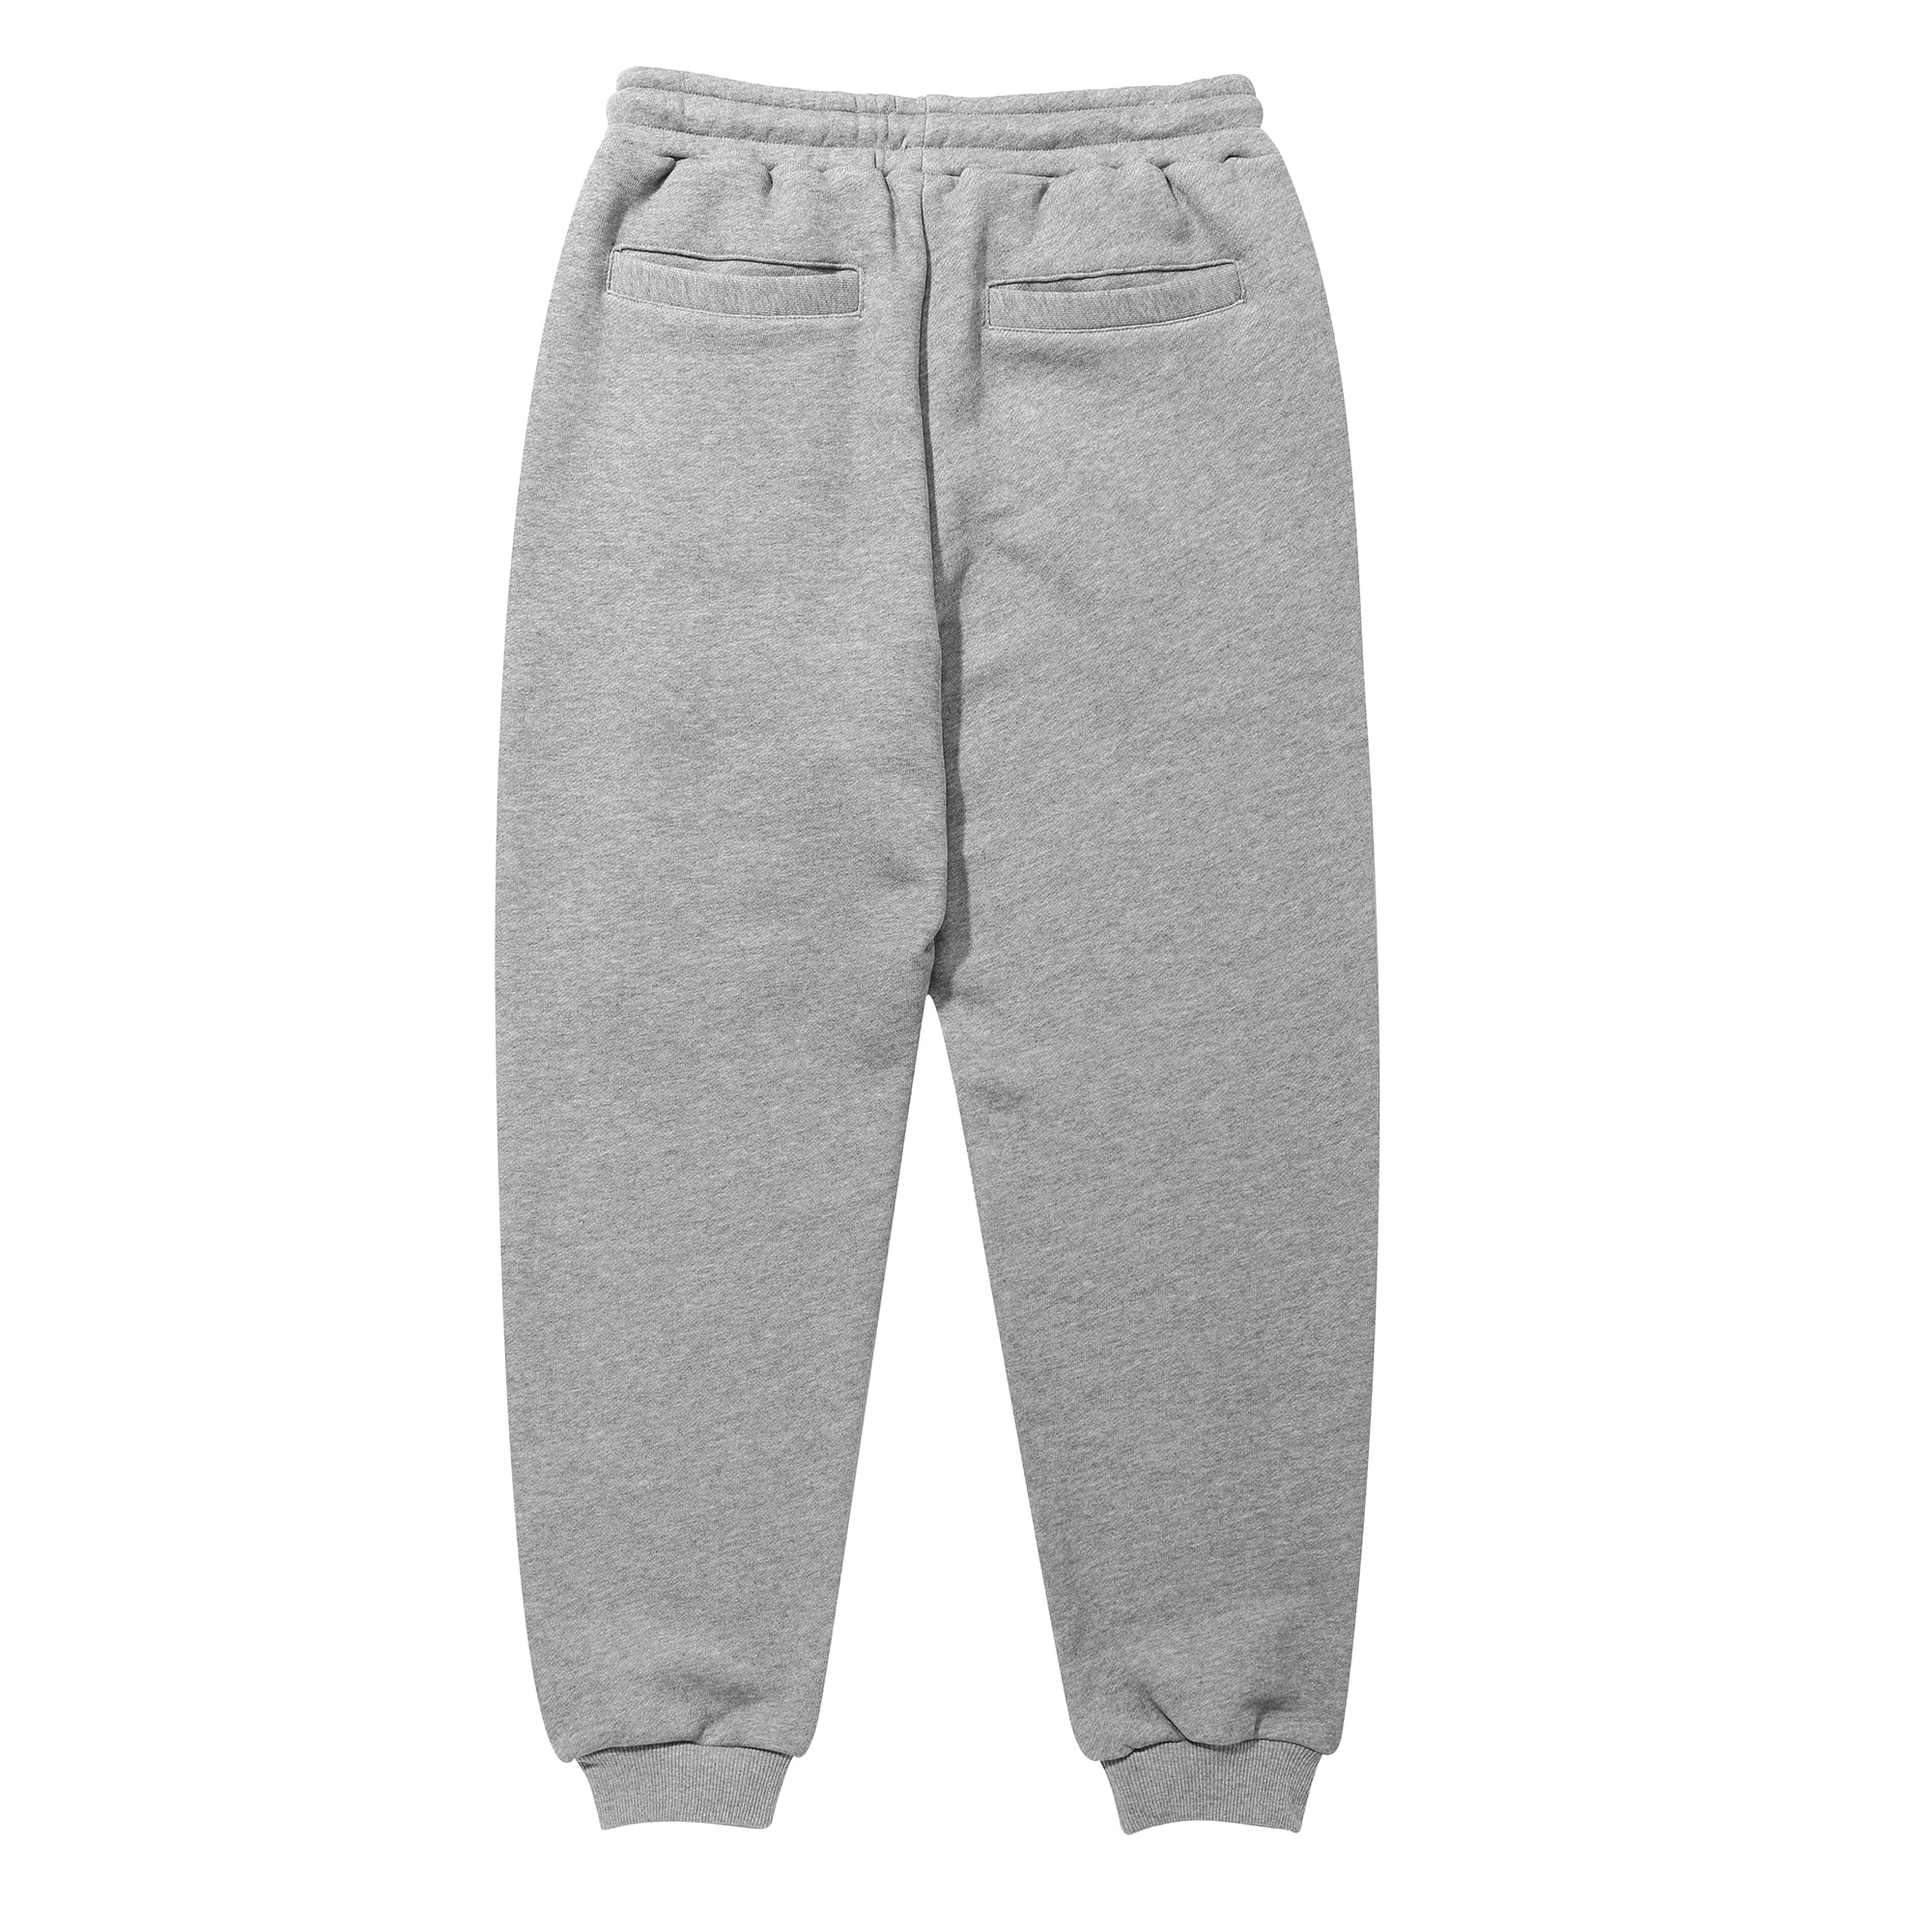 19FW MM Jogger Pants MYFBG4602